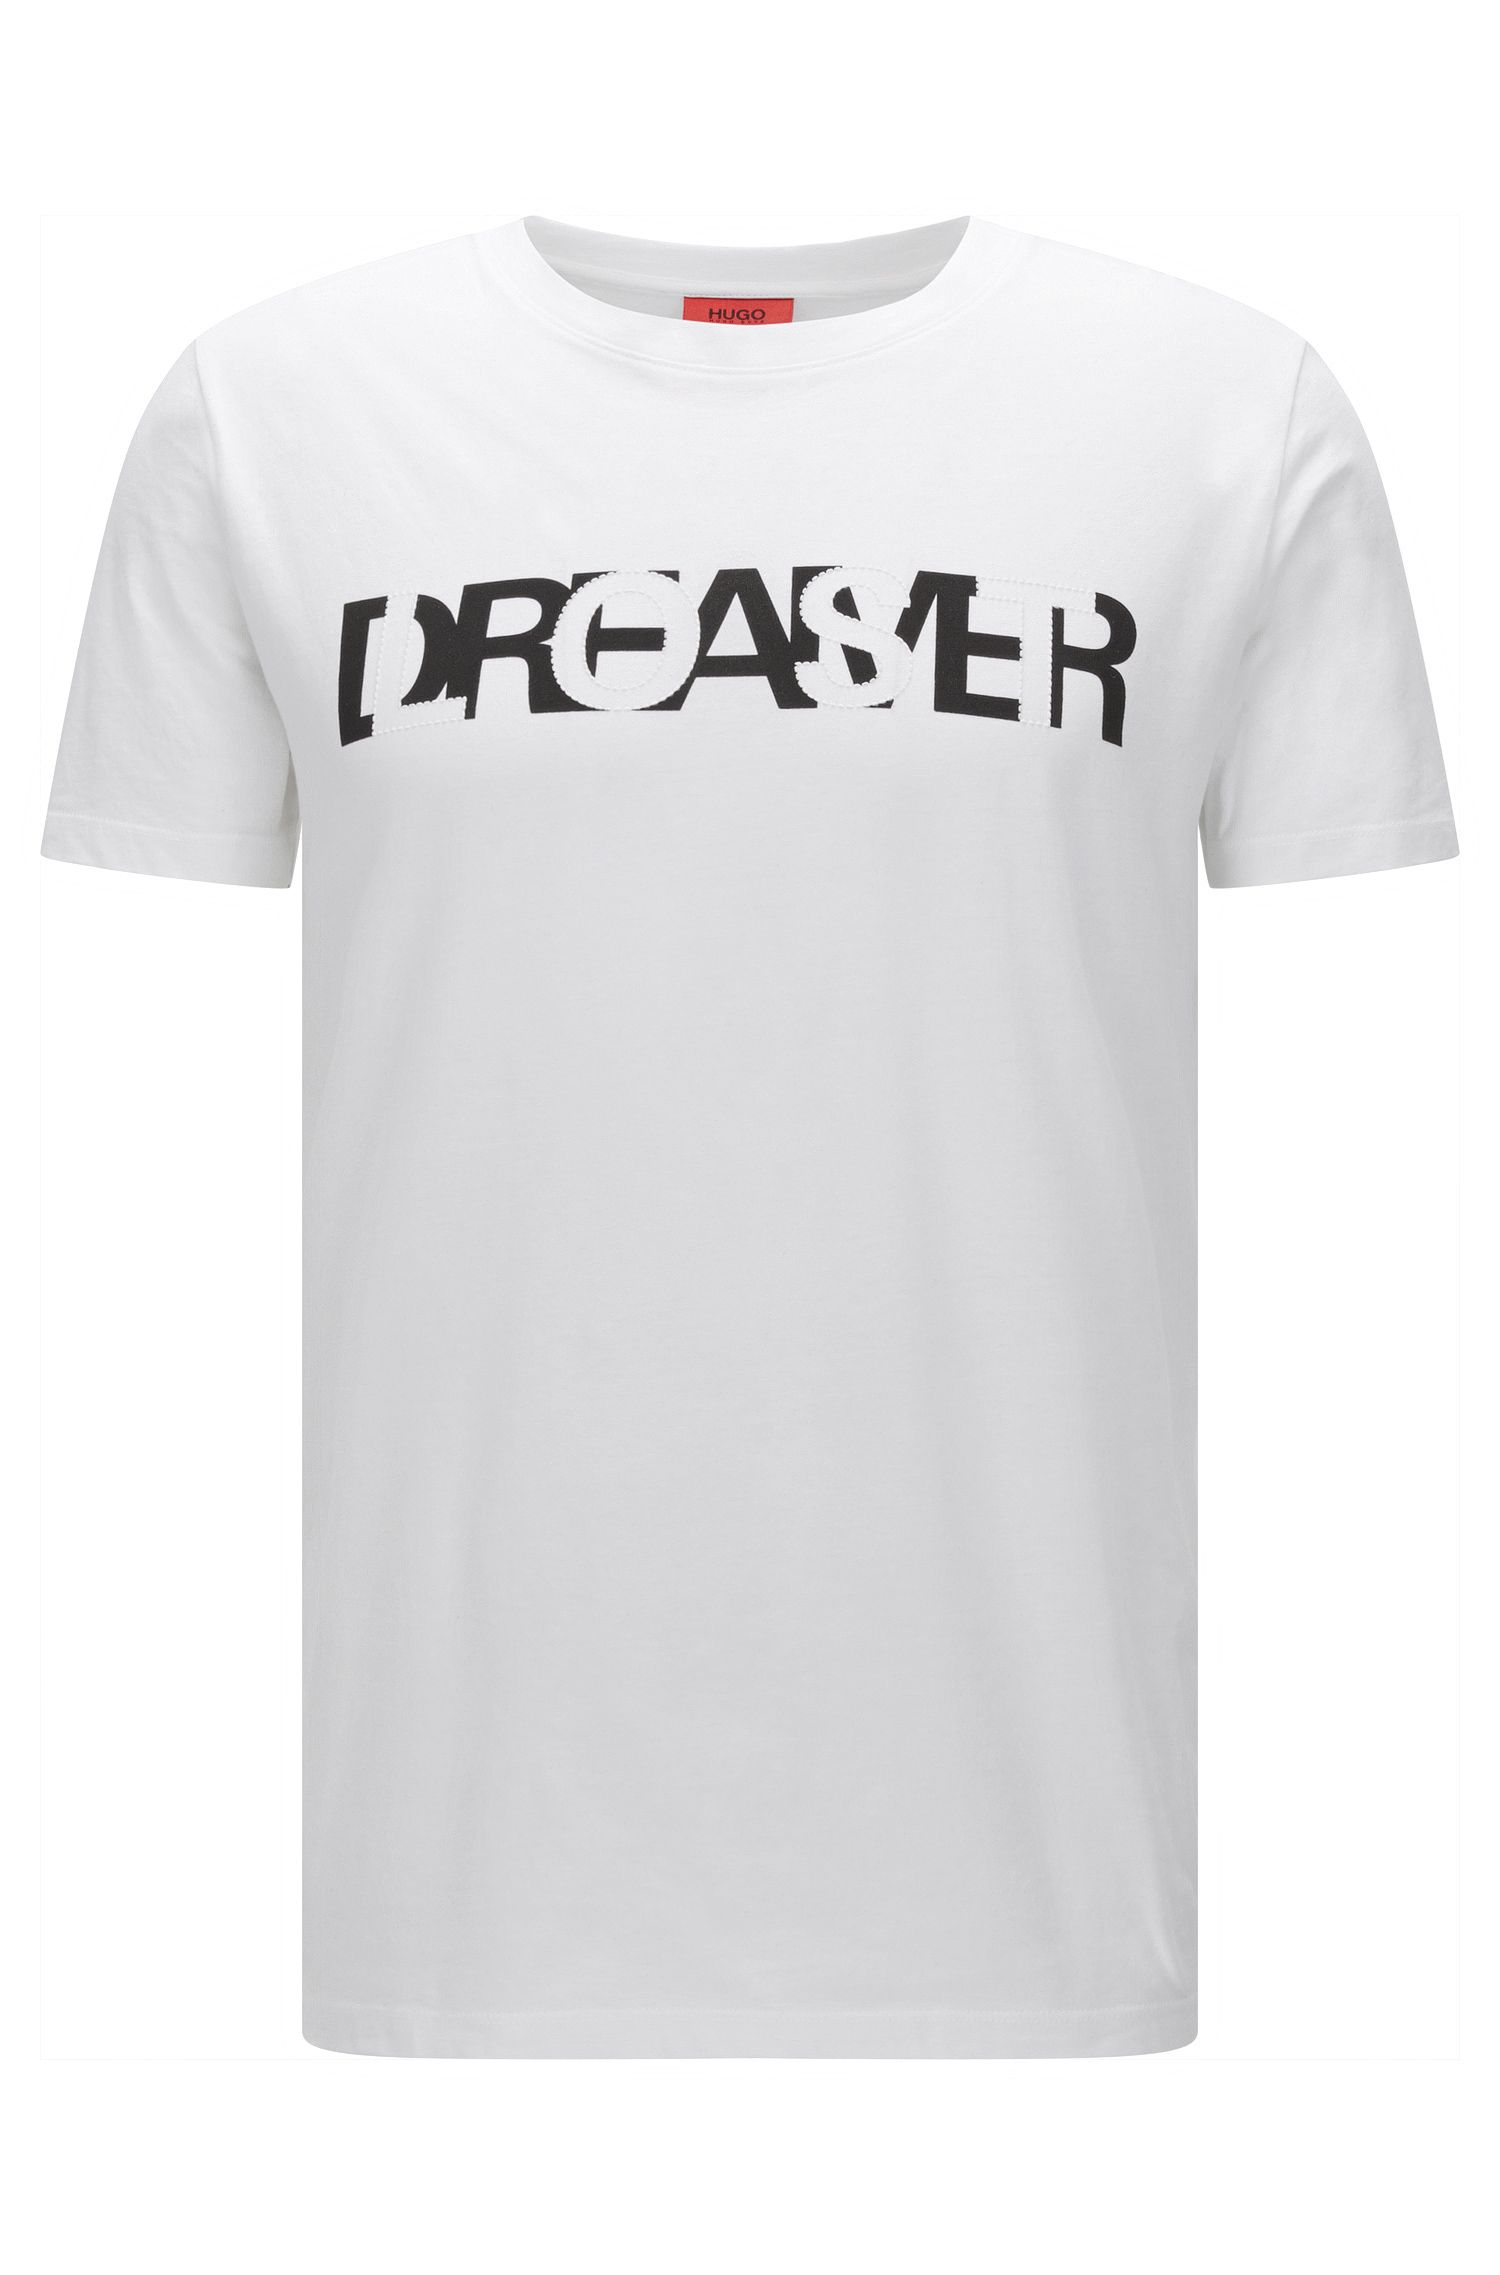 Cotton Graphic T-Shirt | Dreamer, White